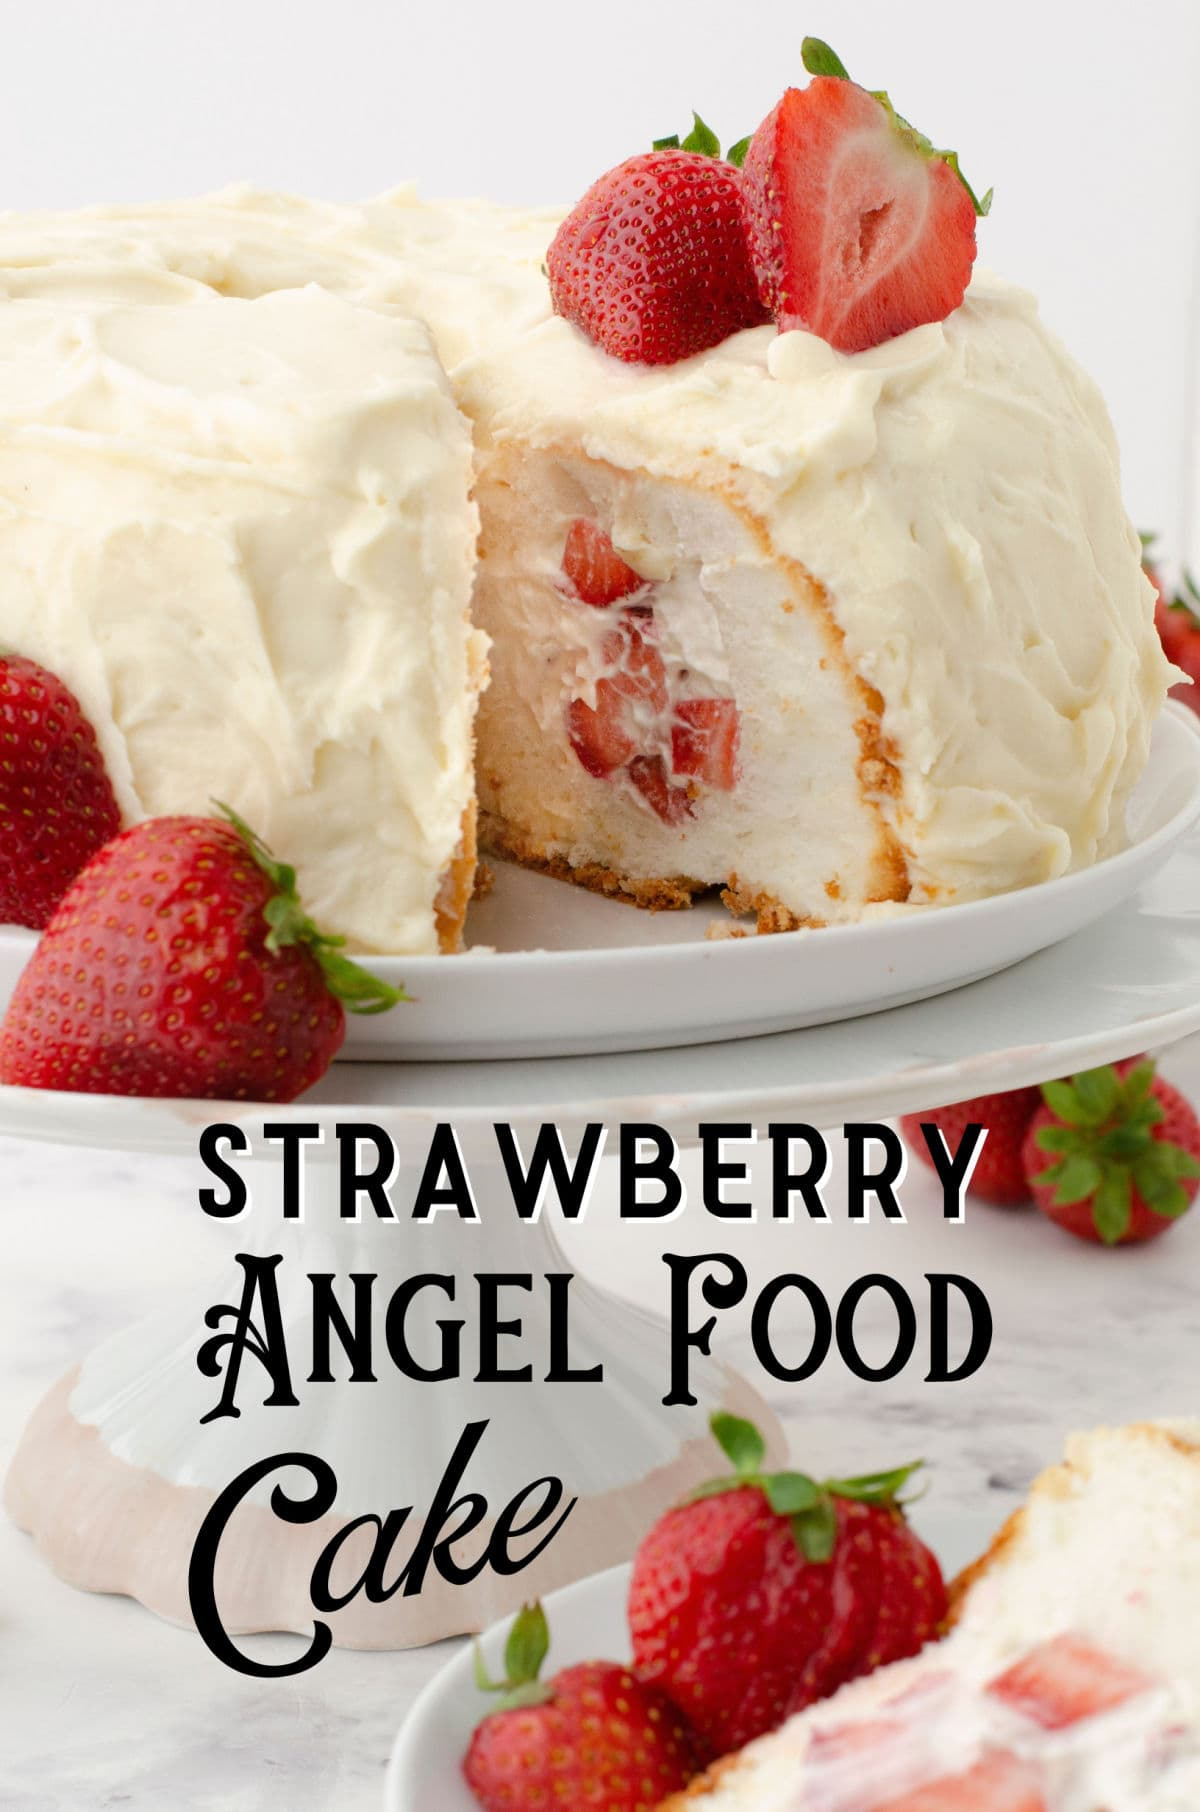 A cake on a plate with a serving removed to show the strawberry and cream filling.